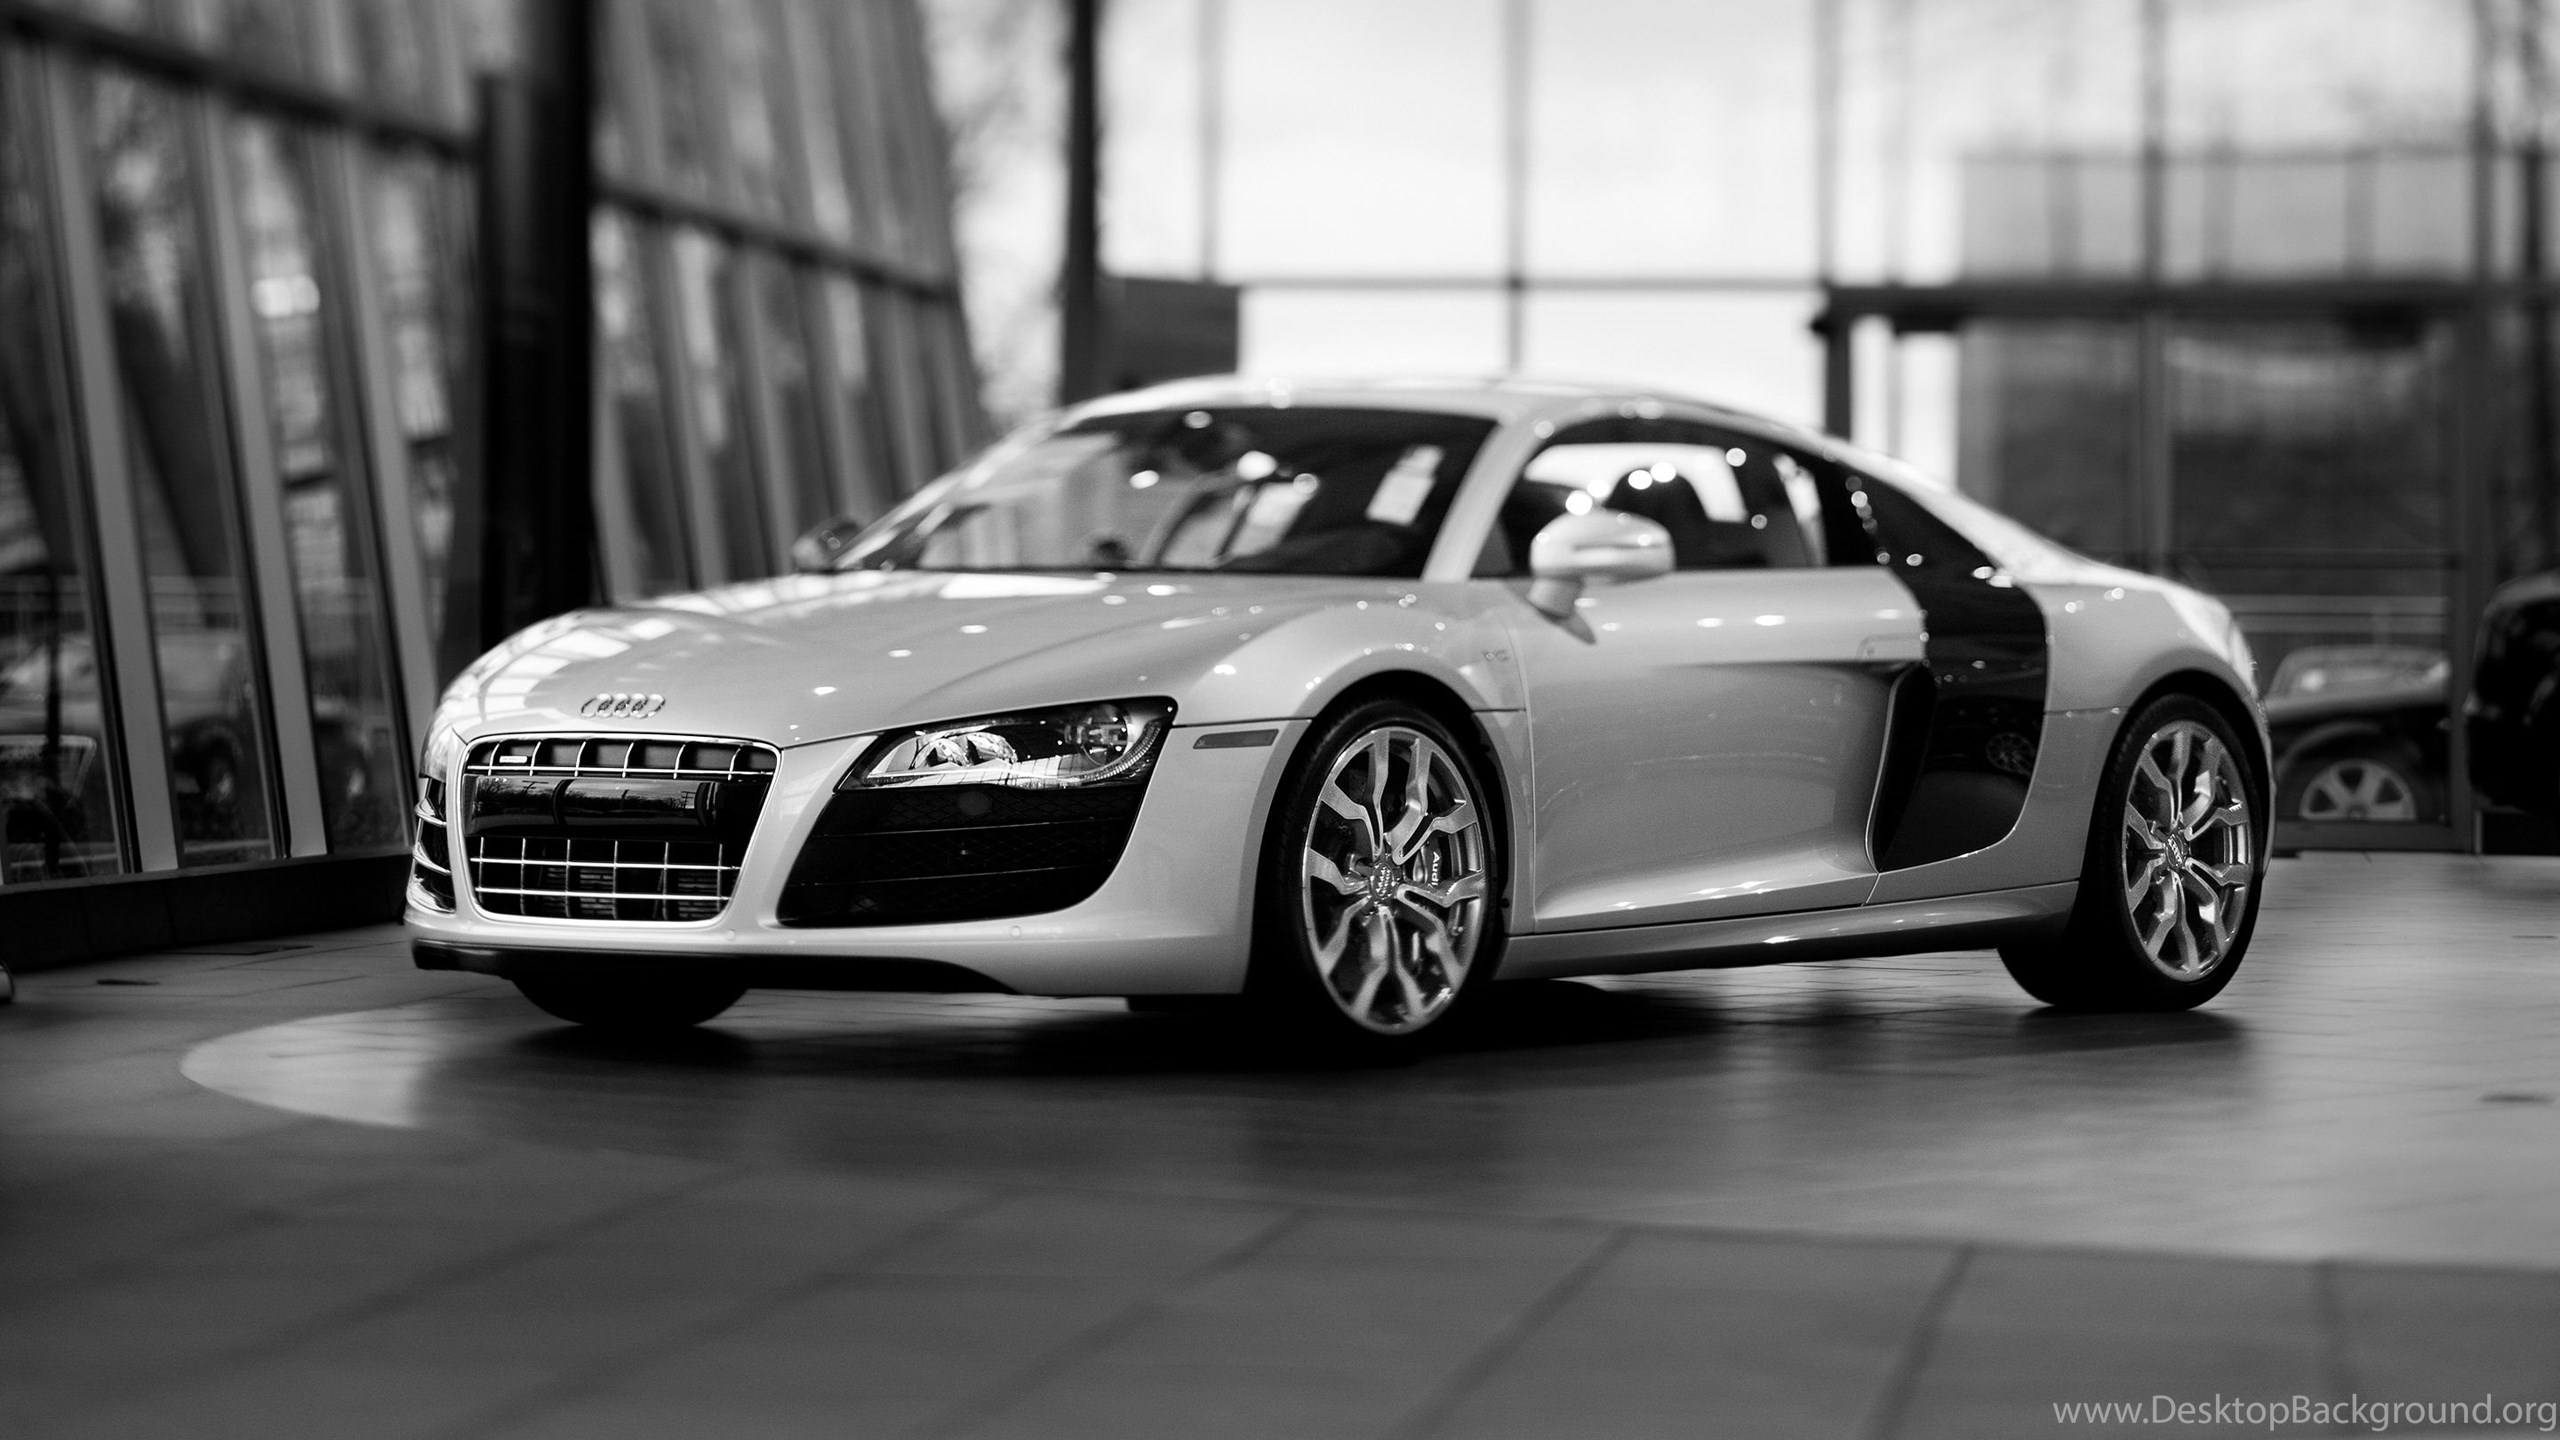 Audi R8 Wallpapers Hd 1080p 1772778 Desktop Background